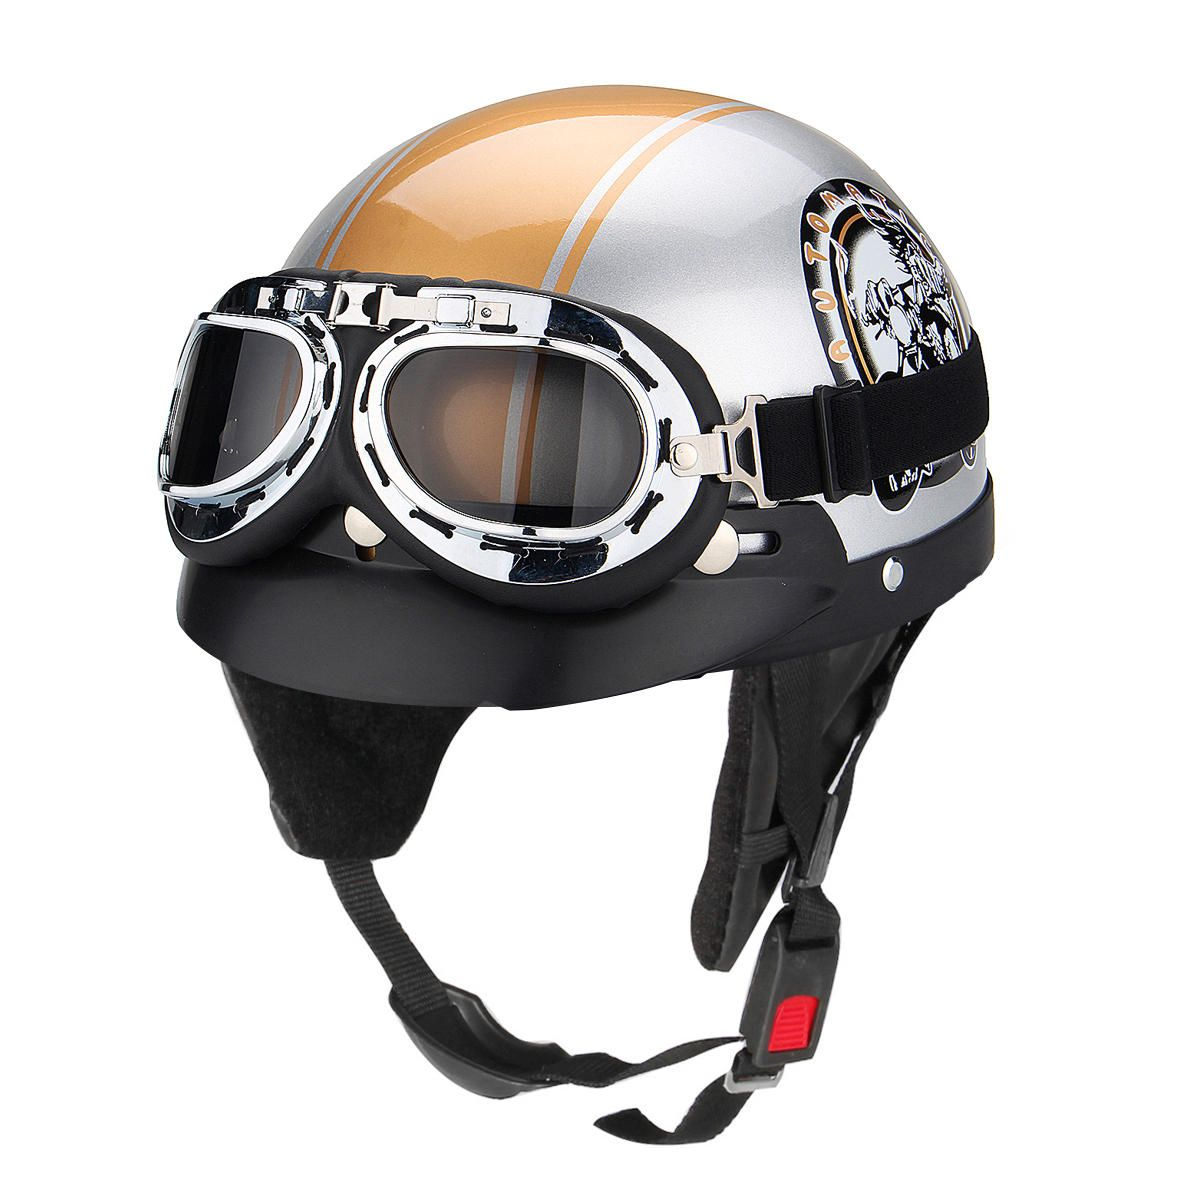 Motorcycle open face safety helmet with sun visorgoggles